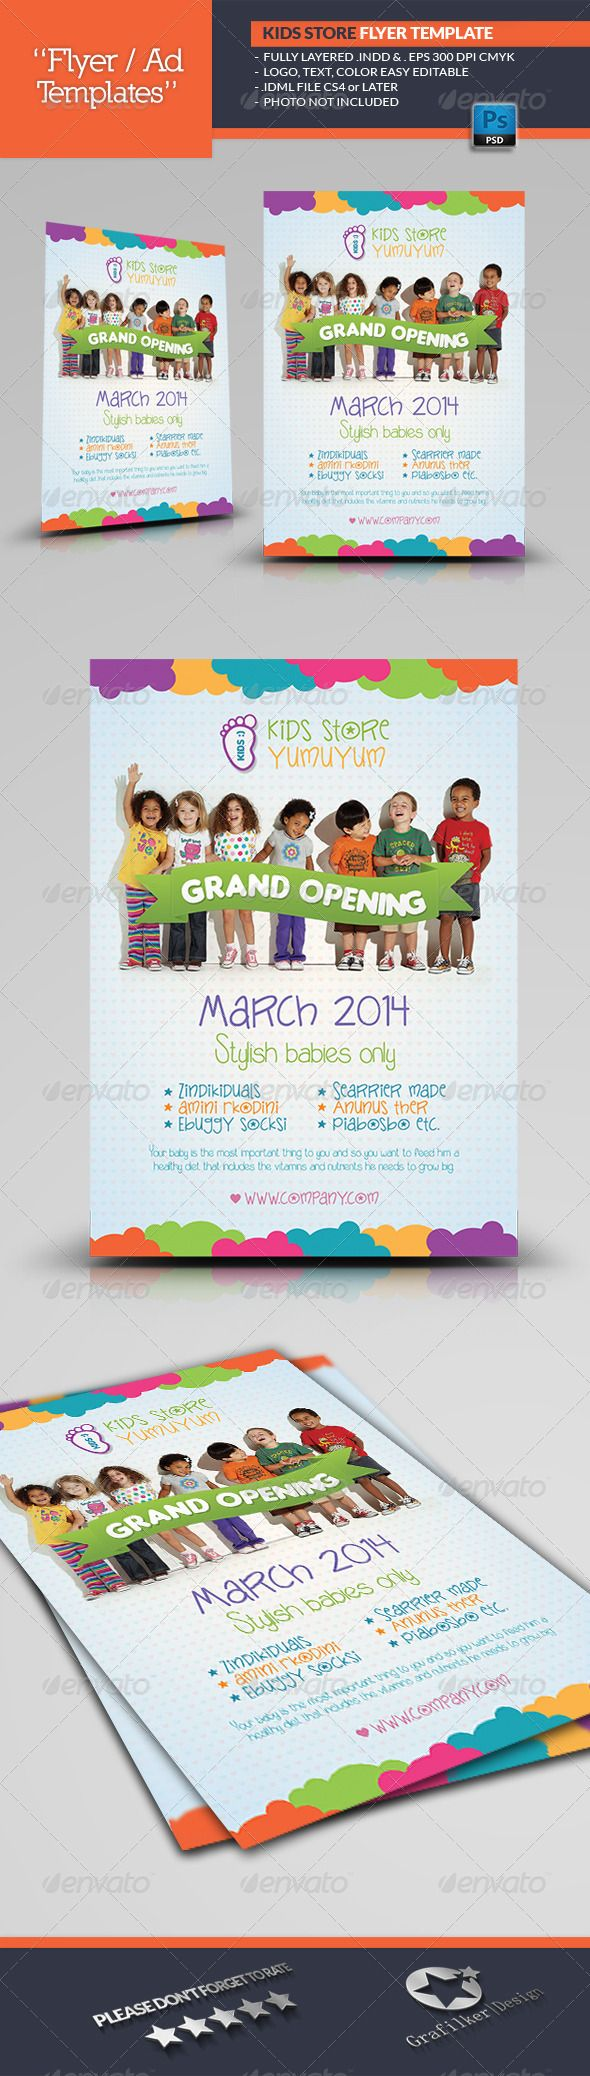 best ideas about store flyers flyer design kids store flyer templates